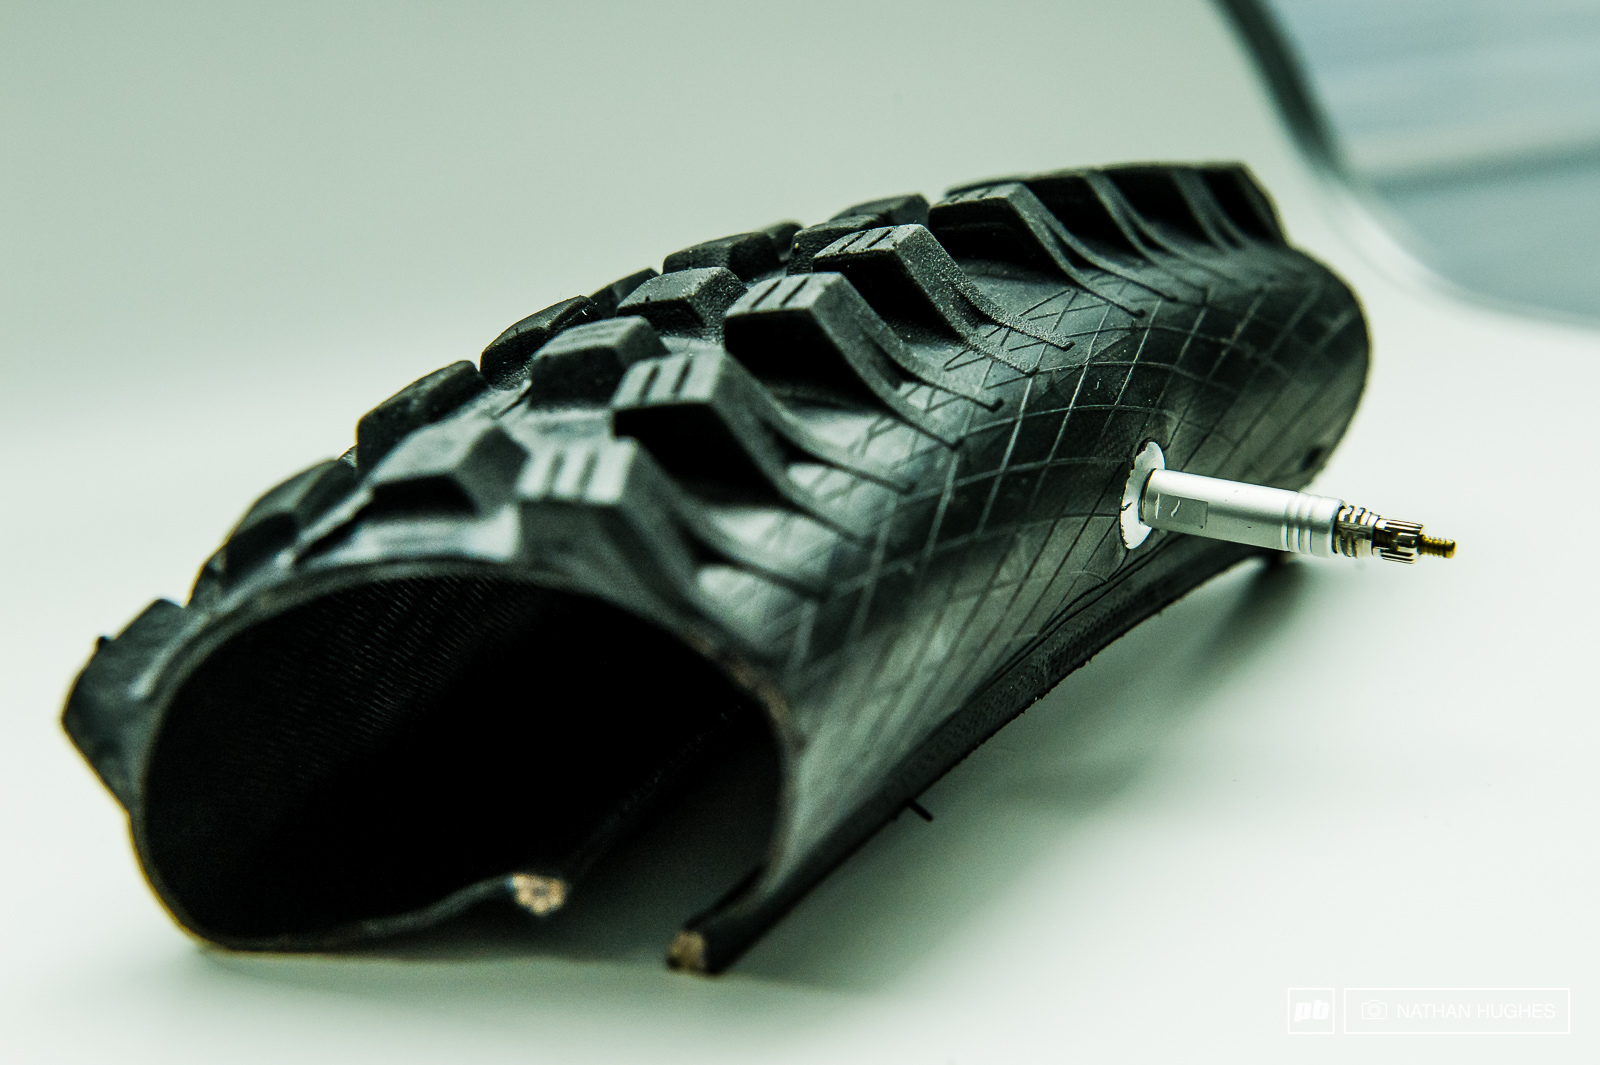 Images by Nathan Hughes for his article - Inside Schwalbe Tires - The Home Story